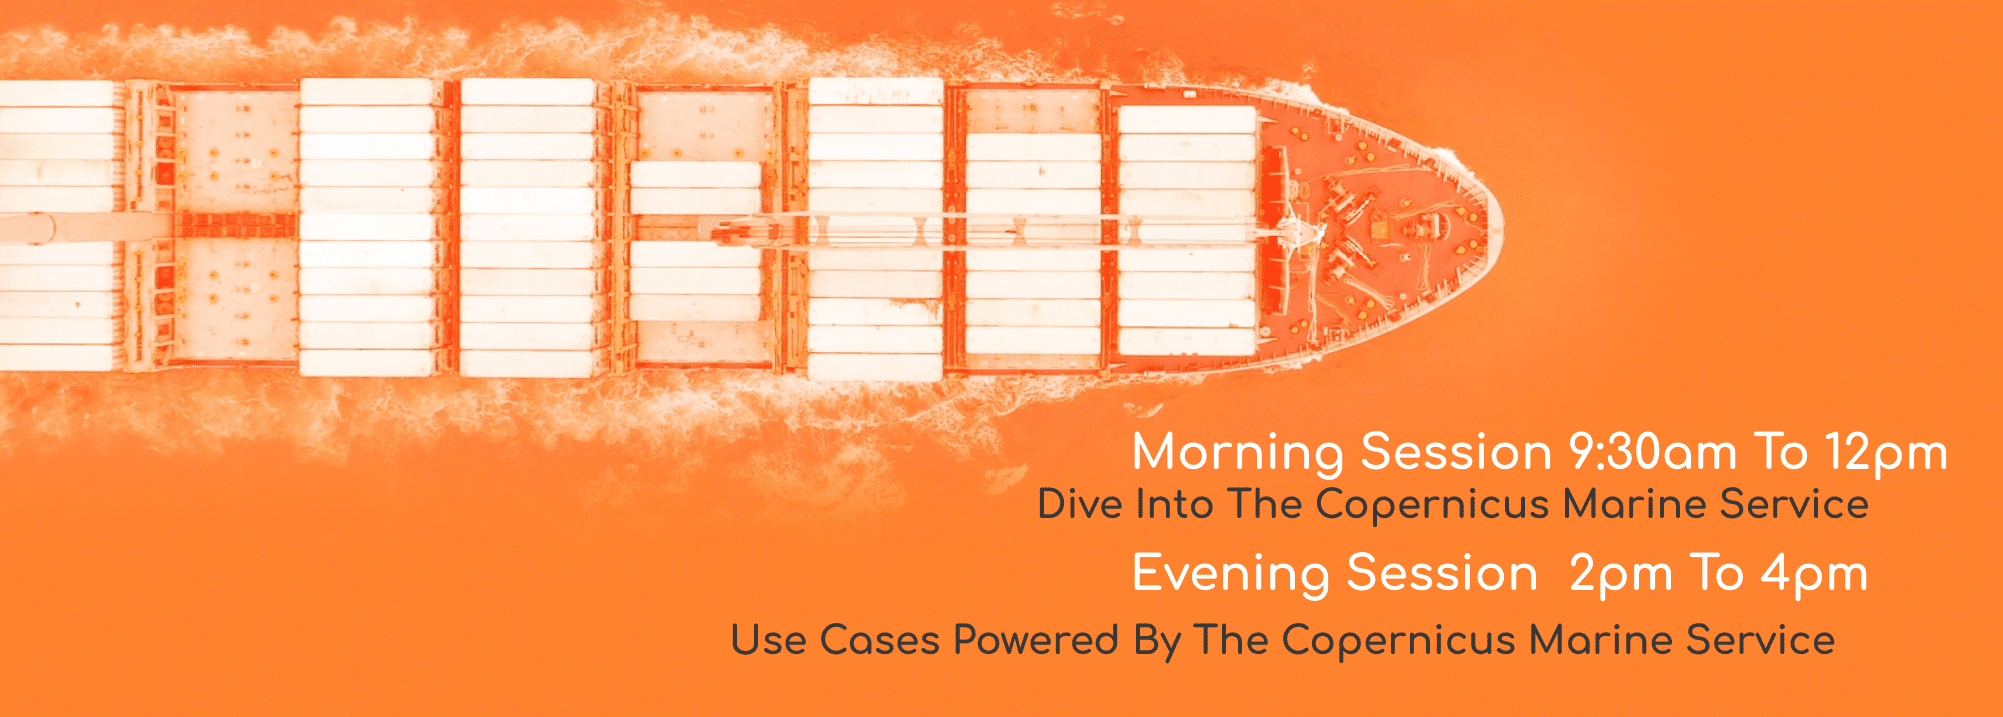 DATA DRIVEN INNOVATION IN MARITIME: Powered by the Copernicus Marine Service